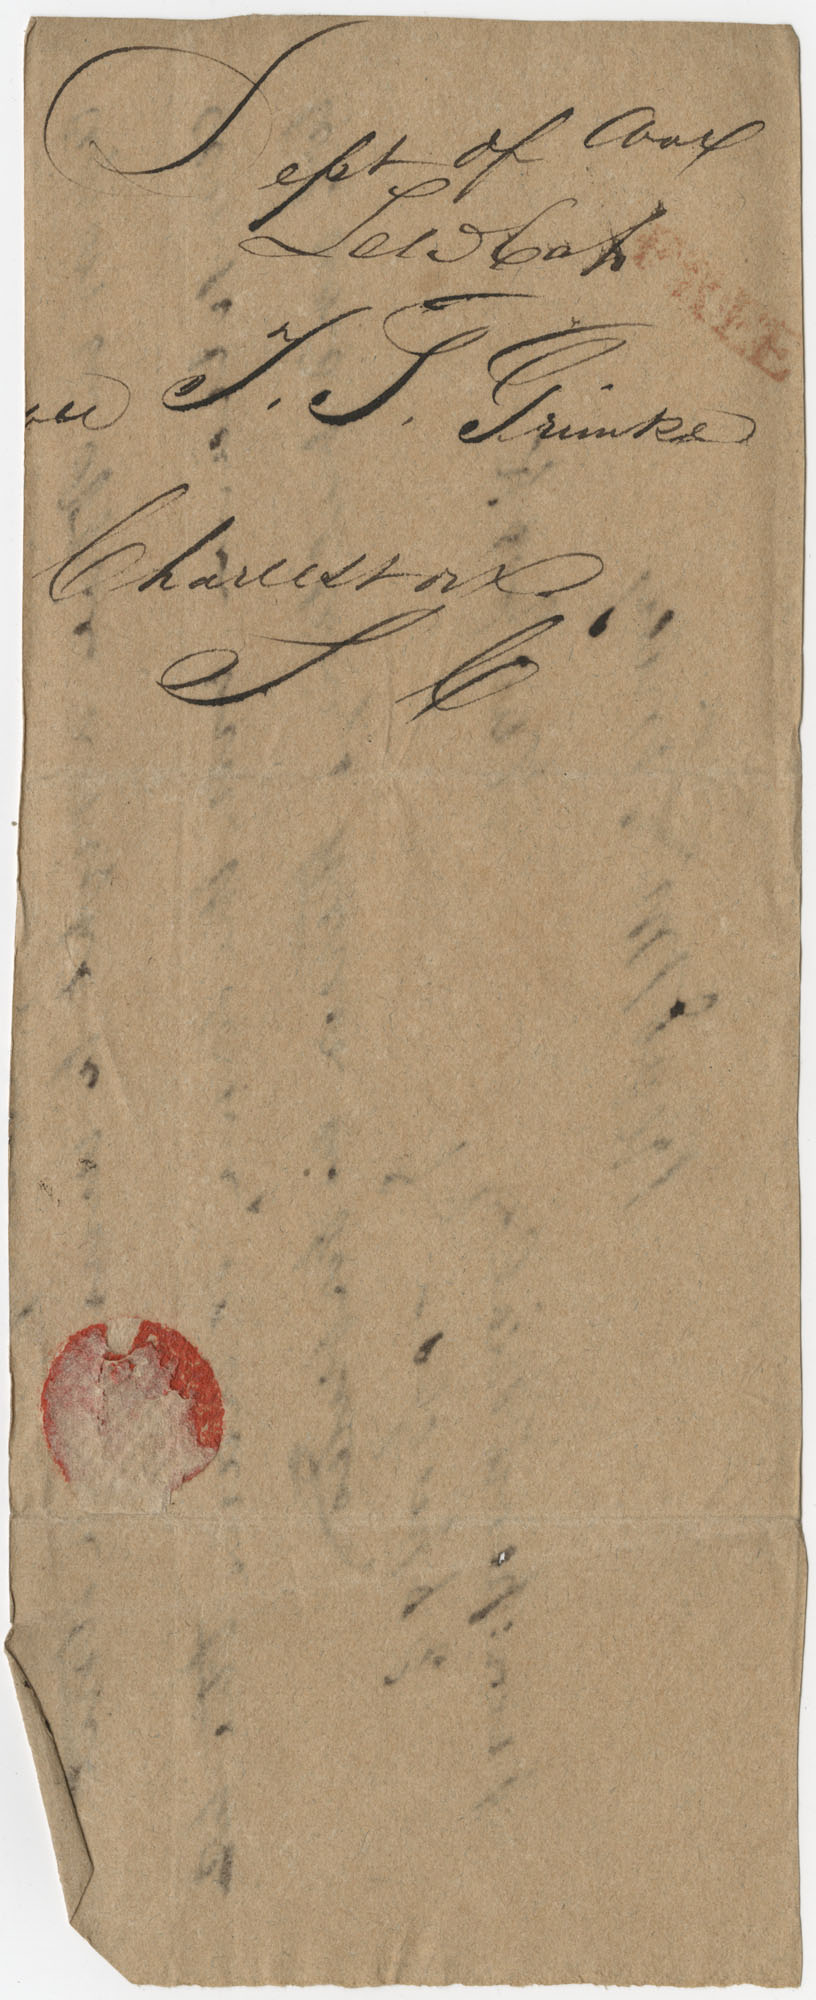 Thomas S. Grimke Autograph Collection, autograph of Lewis Cass, undated